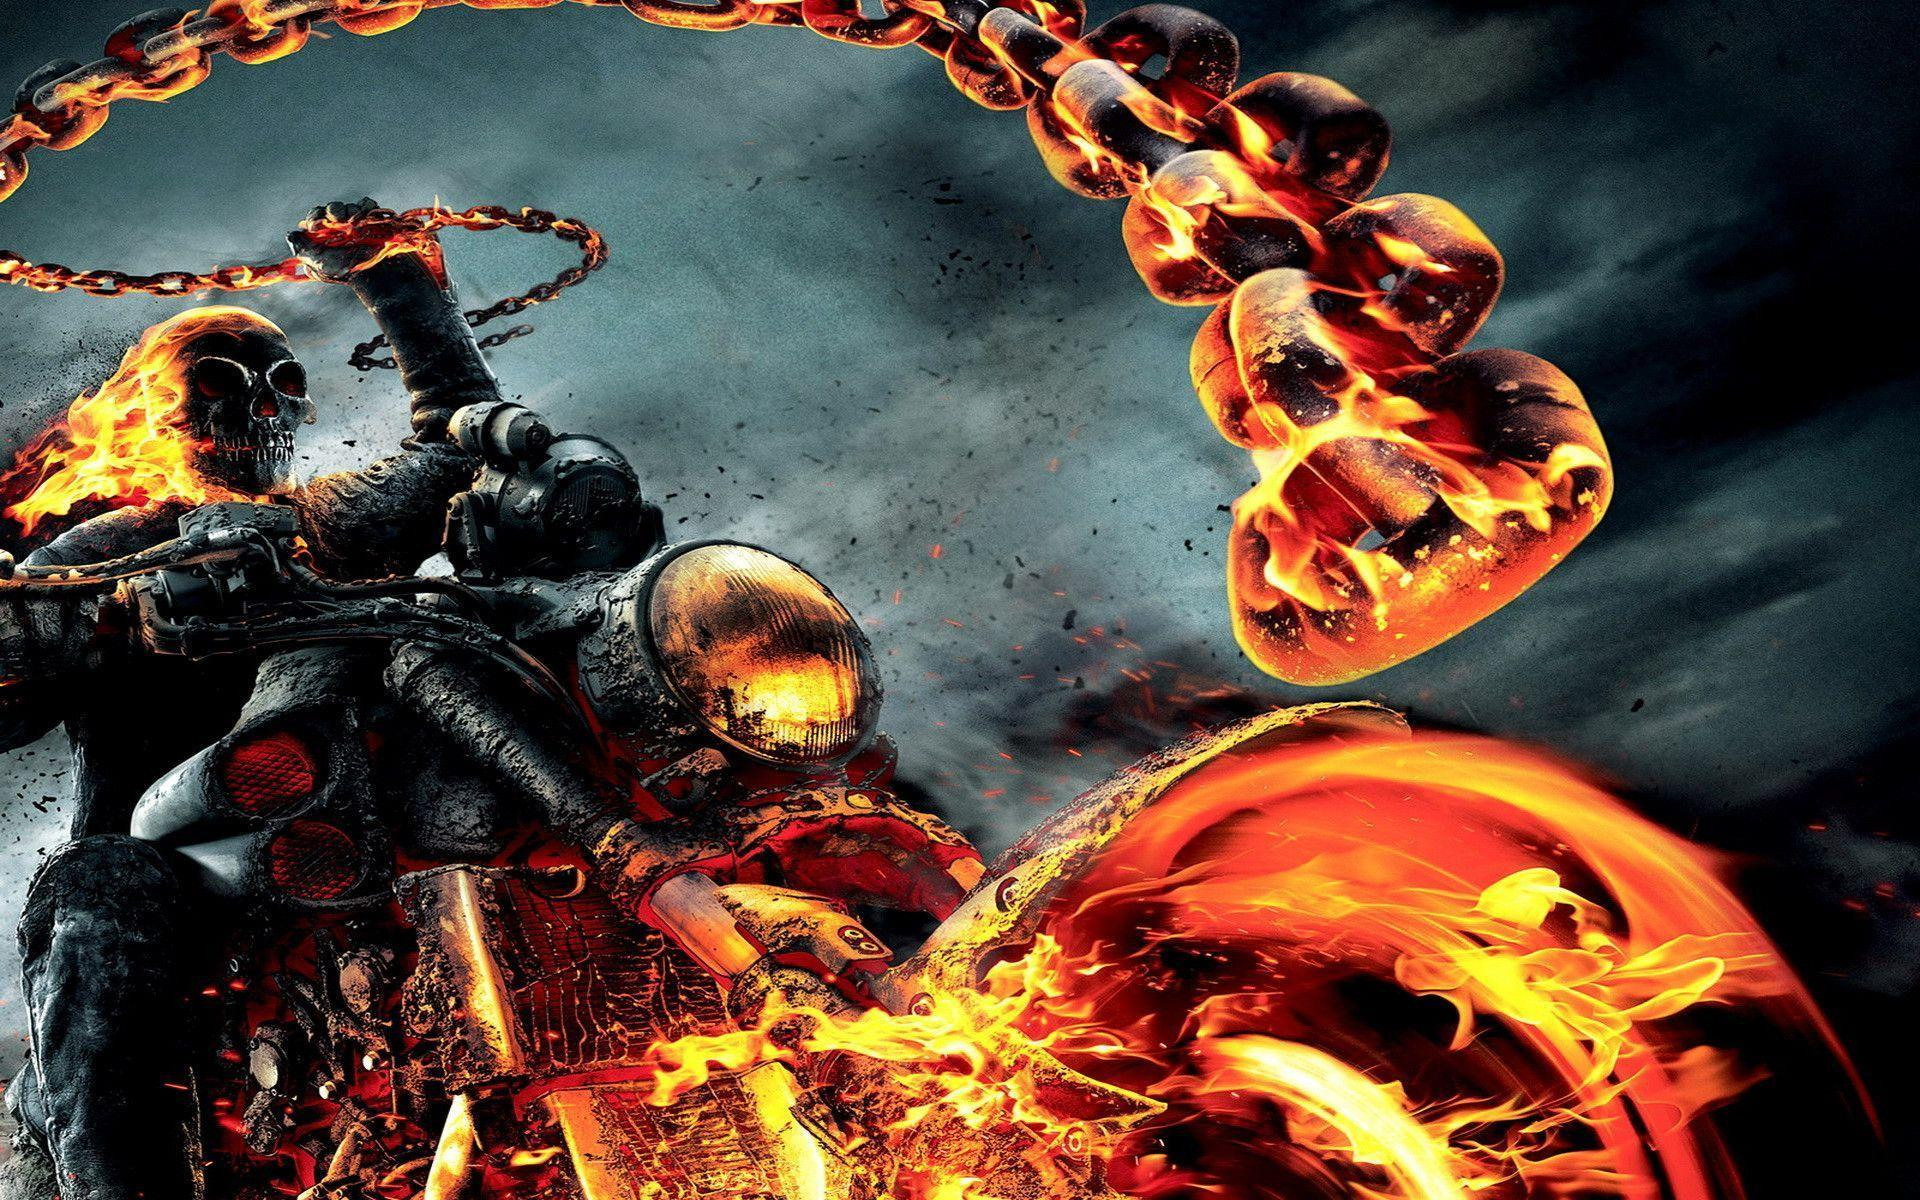 Wallpapers For Ghost Rider Mobile Wallpaper